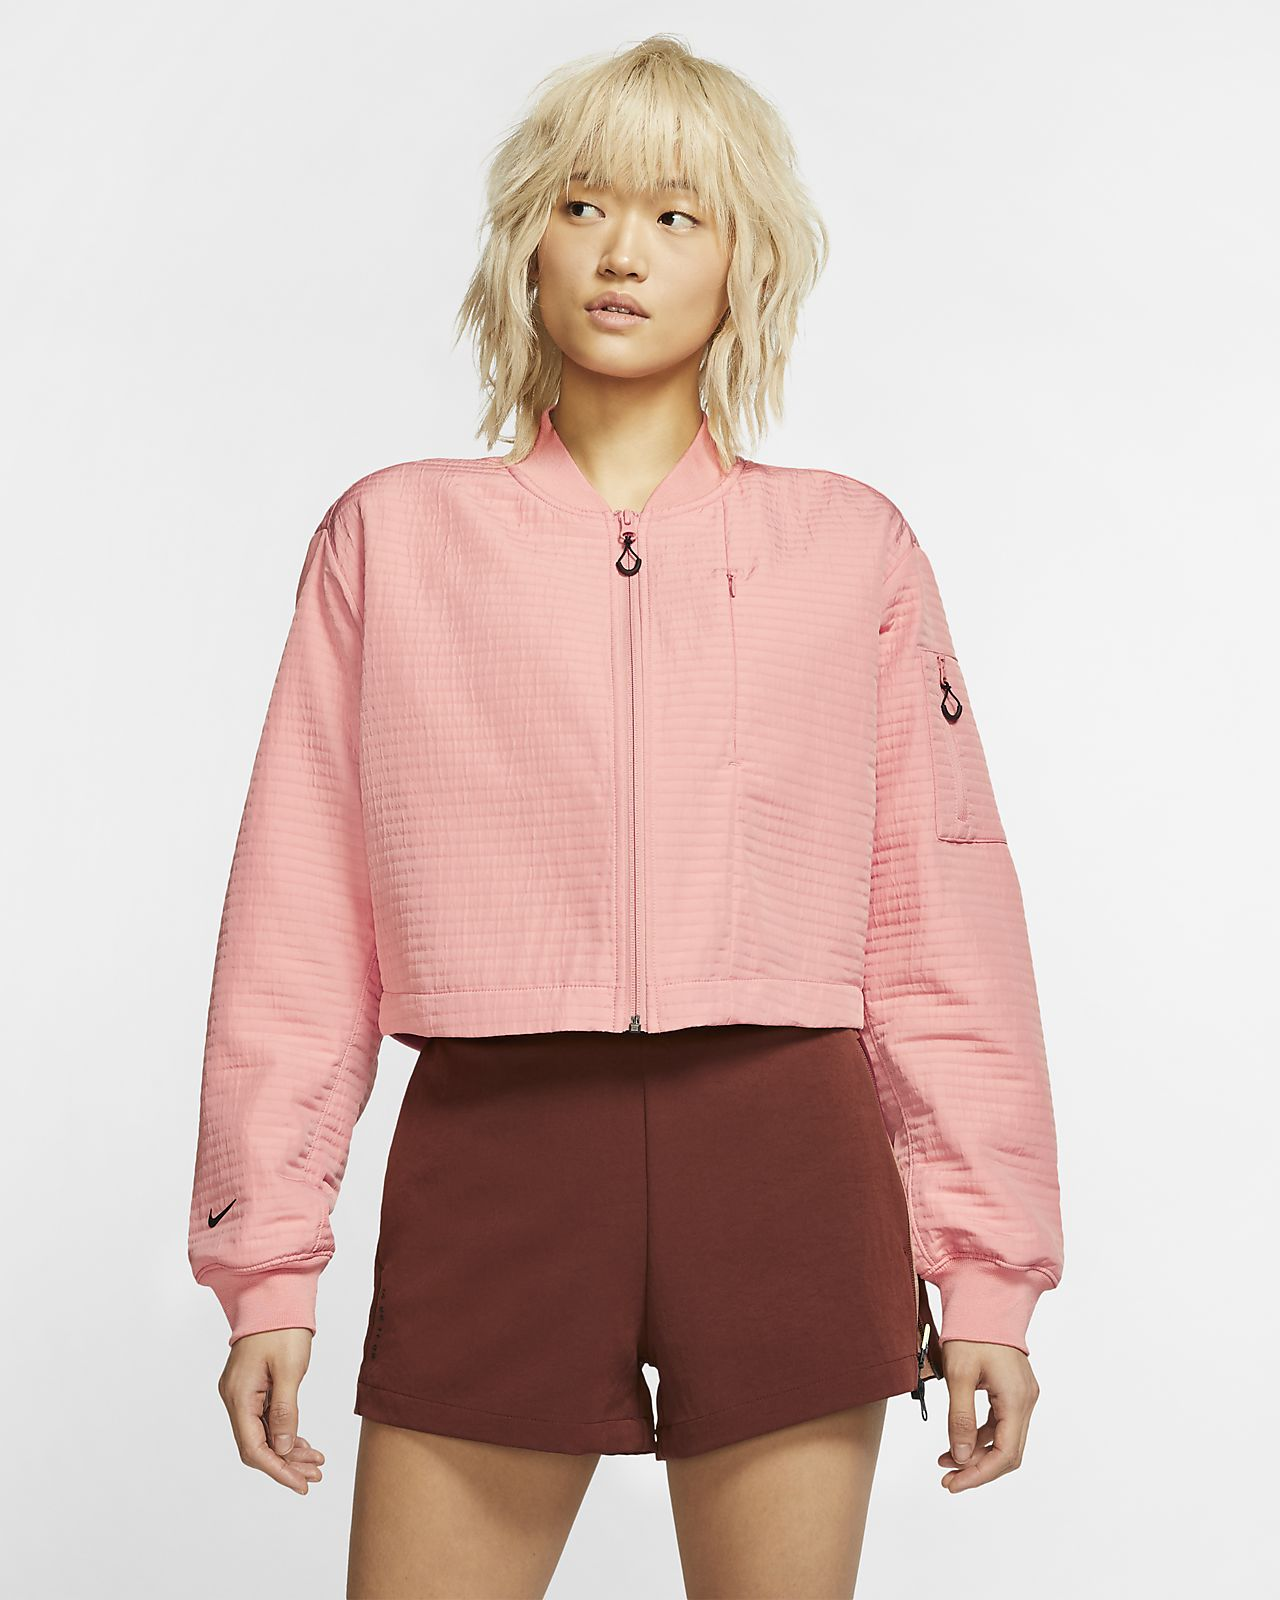 Nike Sportswear Tech Pack City Ready Women's Bomber